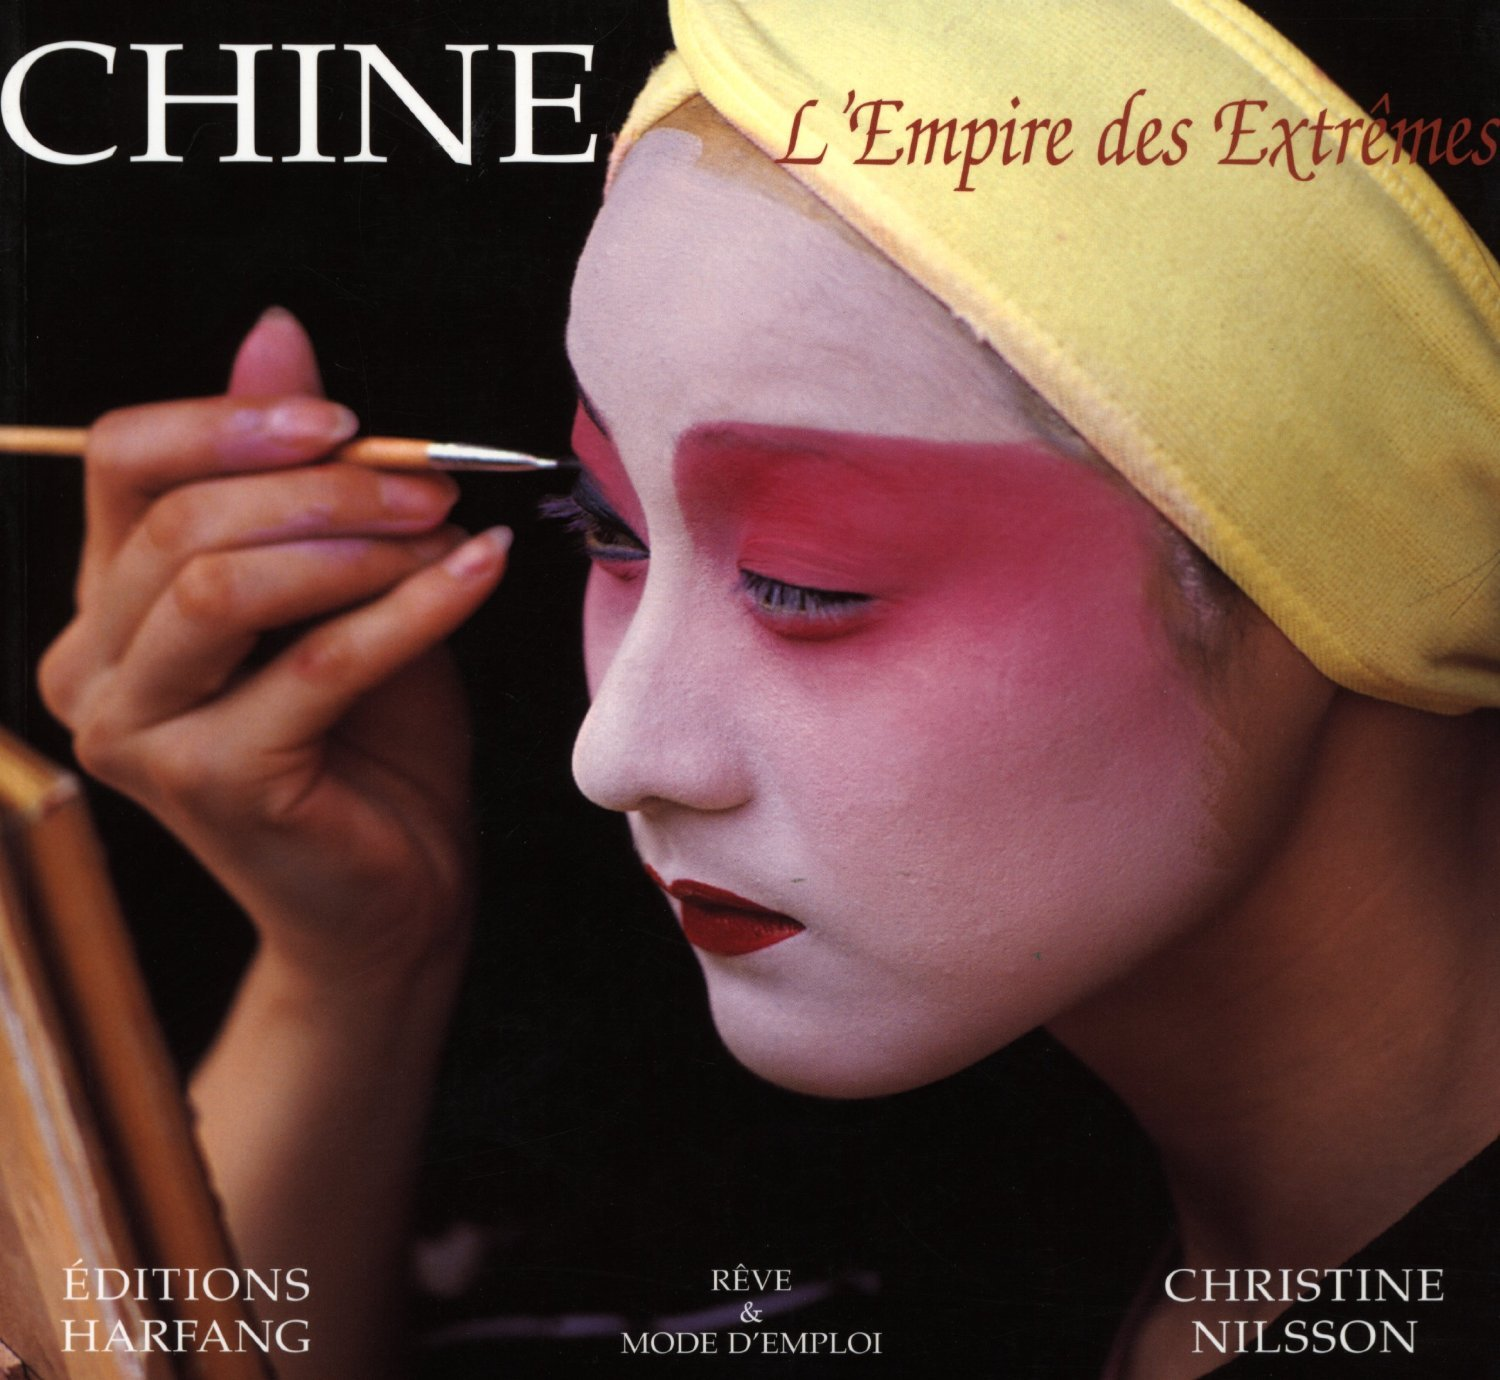 CHINE L'EMPIRE DES EXTREMES